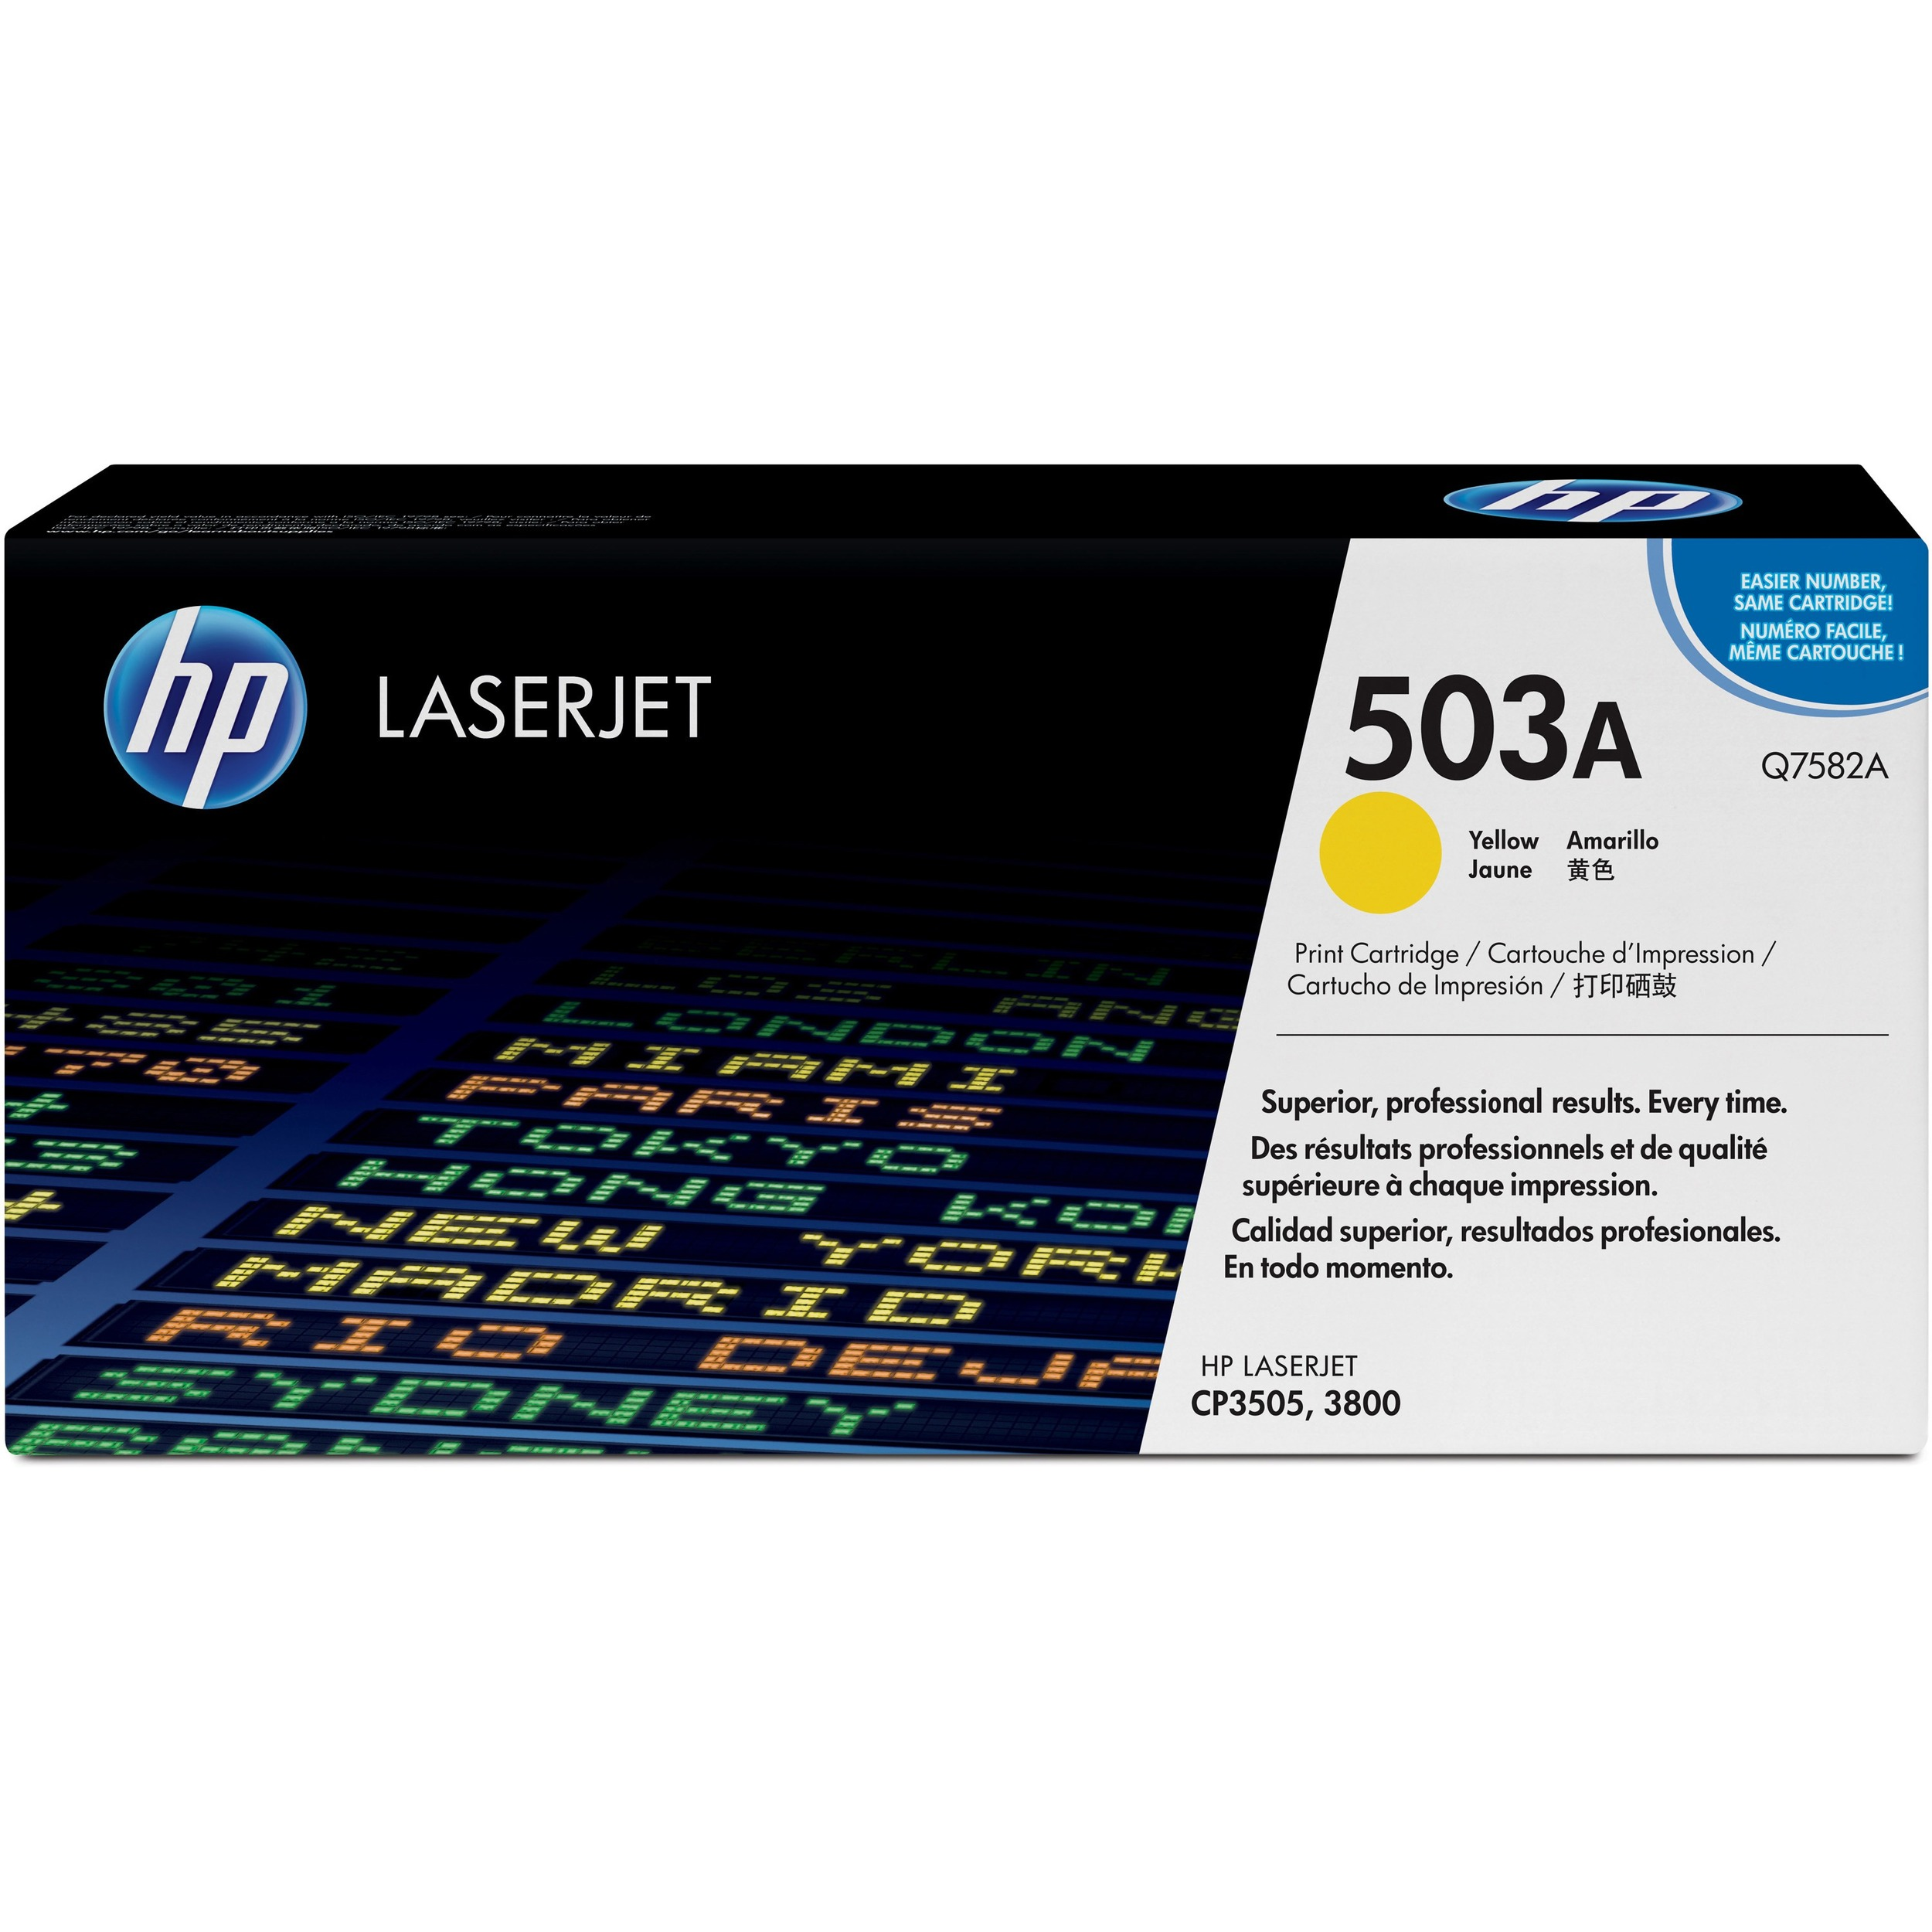 HP 503A Toner Cartridge - Yellow - Laser - 6000 Page - 1 Each